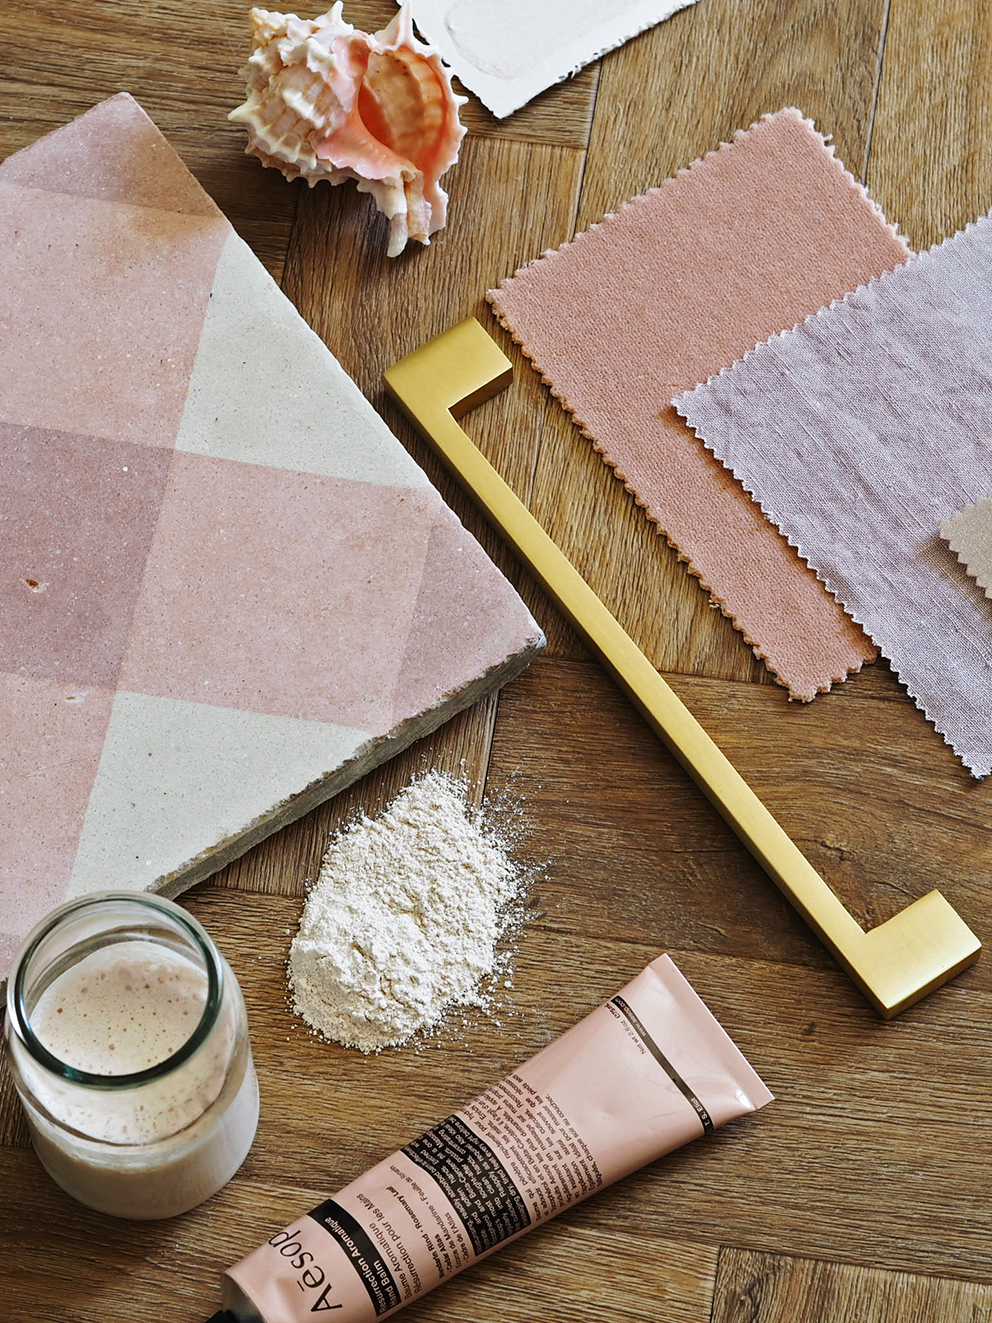 French For Pineapple Blog - Maitland & Poate Antinque Tiles - Pink Tile Flatlay